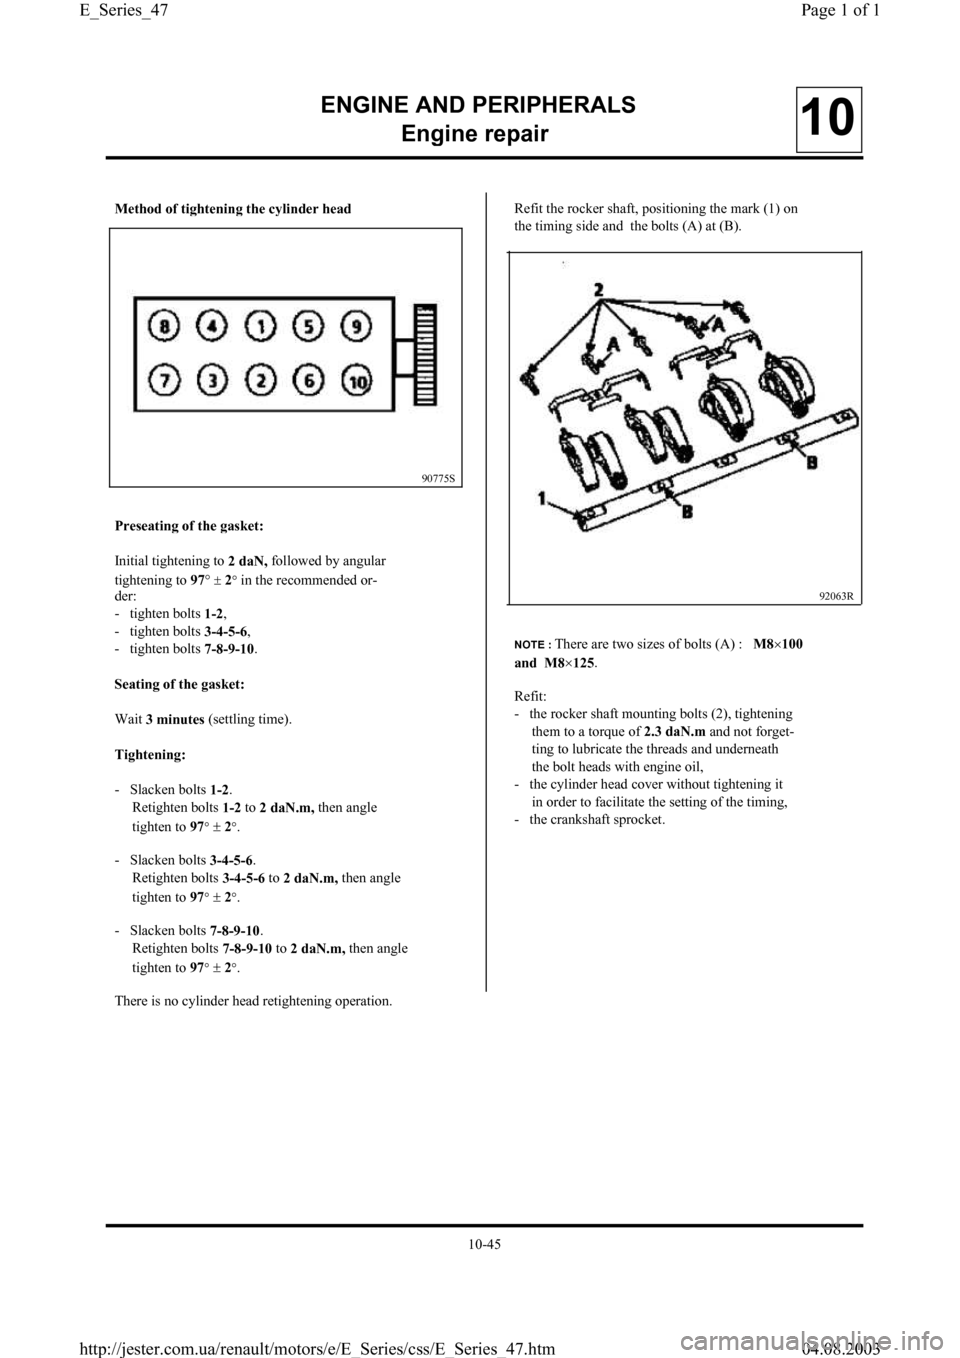 RENAULT CLIO 1997 X57 / 1.G Petrol Engines Workshop Manual, Page 47